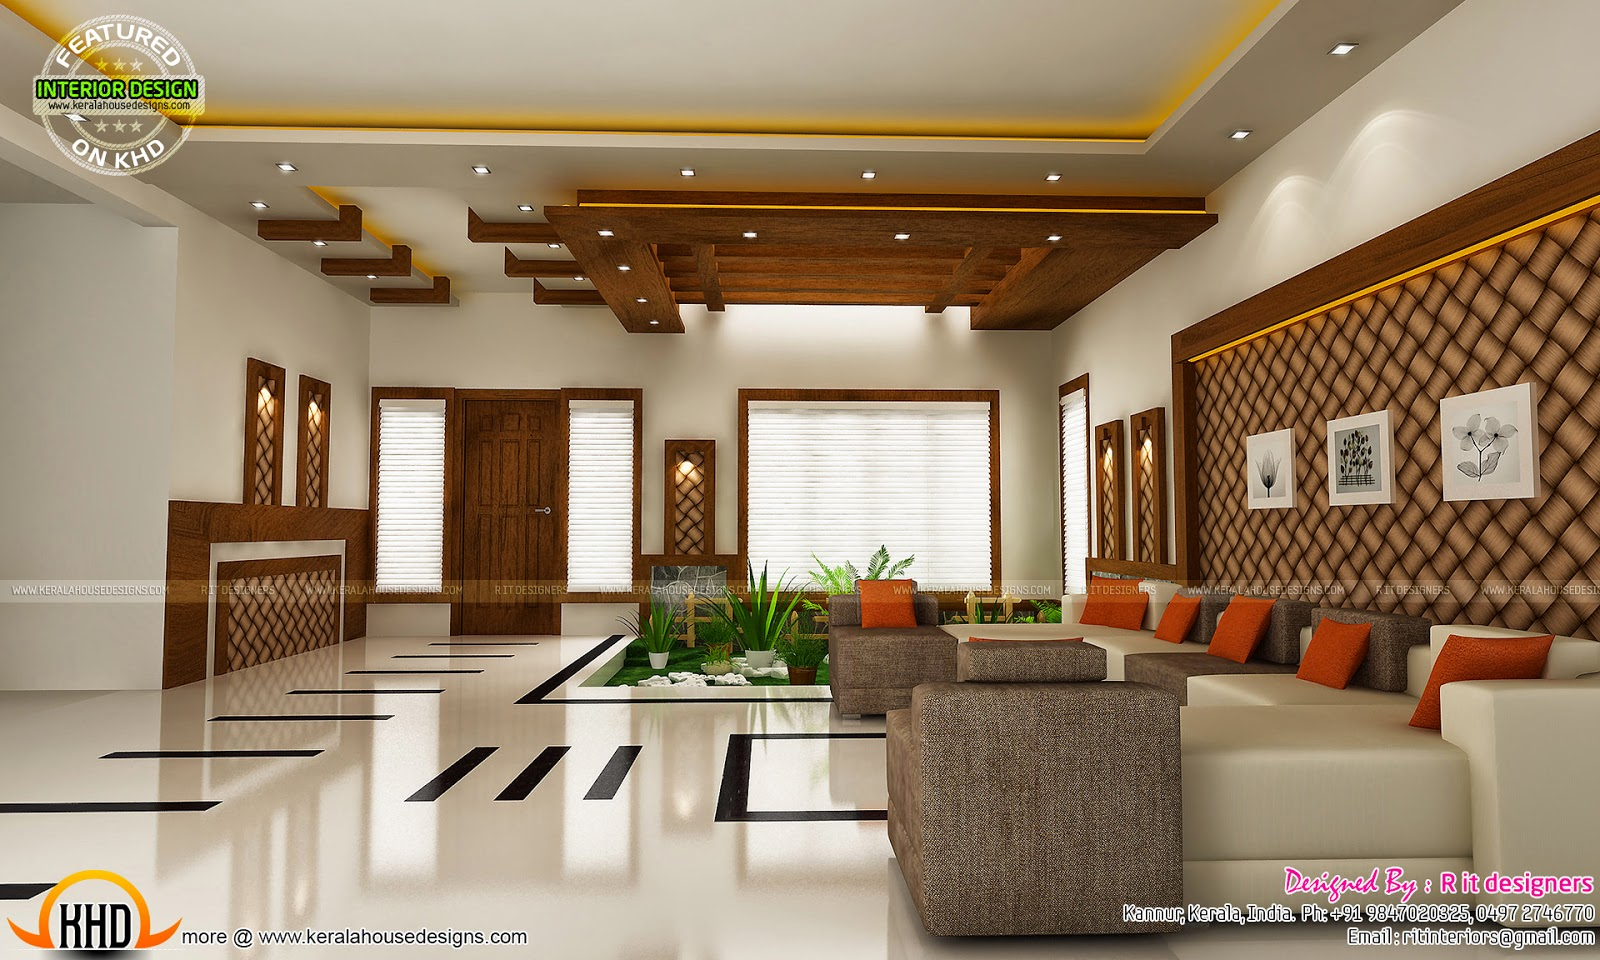 Modern and unique dining kitchen interior kerala home for House design inside